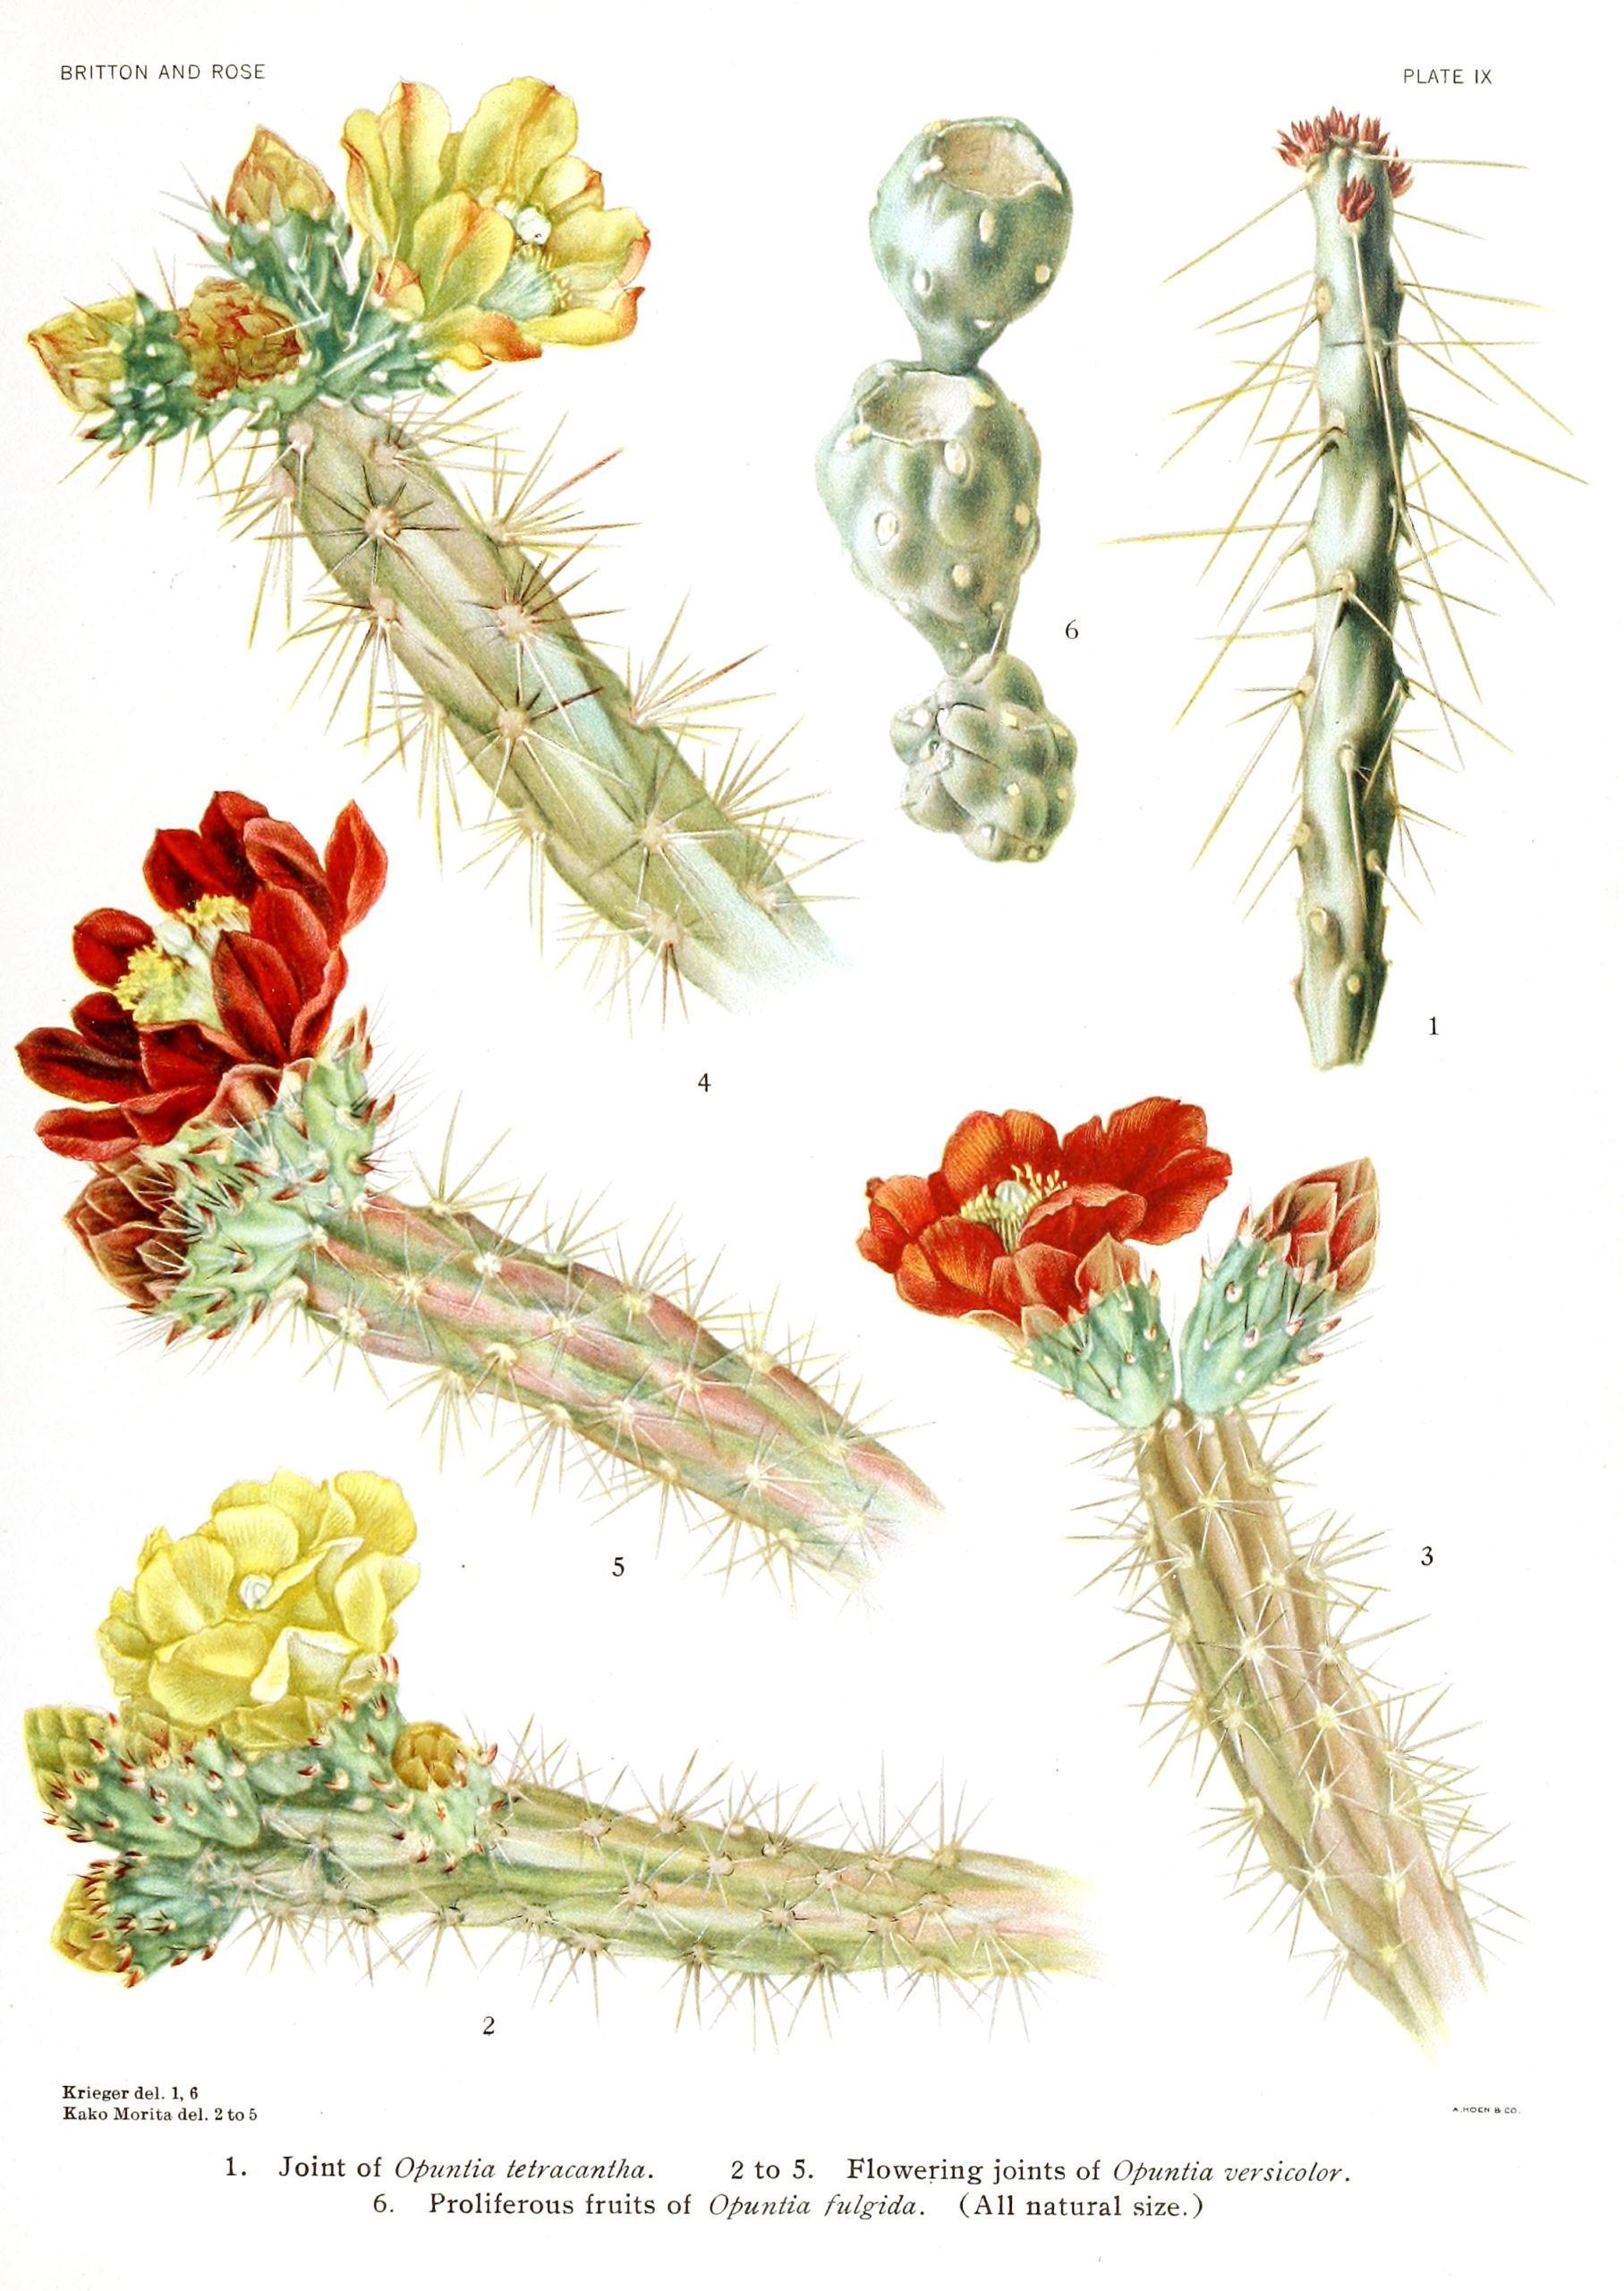 Captivating Cactus and Striking Succulents - 68 in a series - More opuntia cactus and flowers from The Cactacae, Volume 1 (1919)